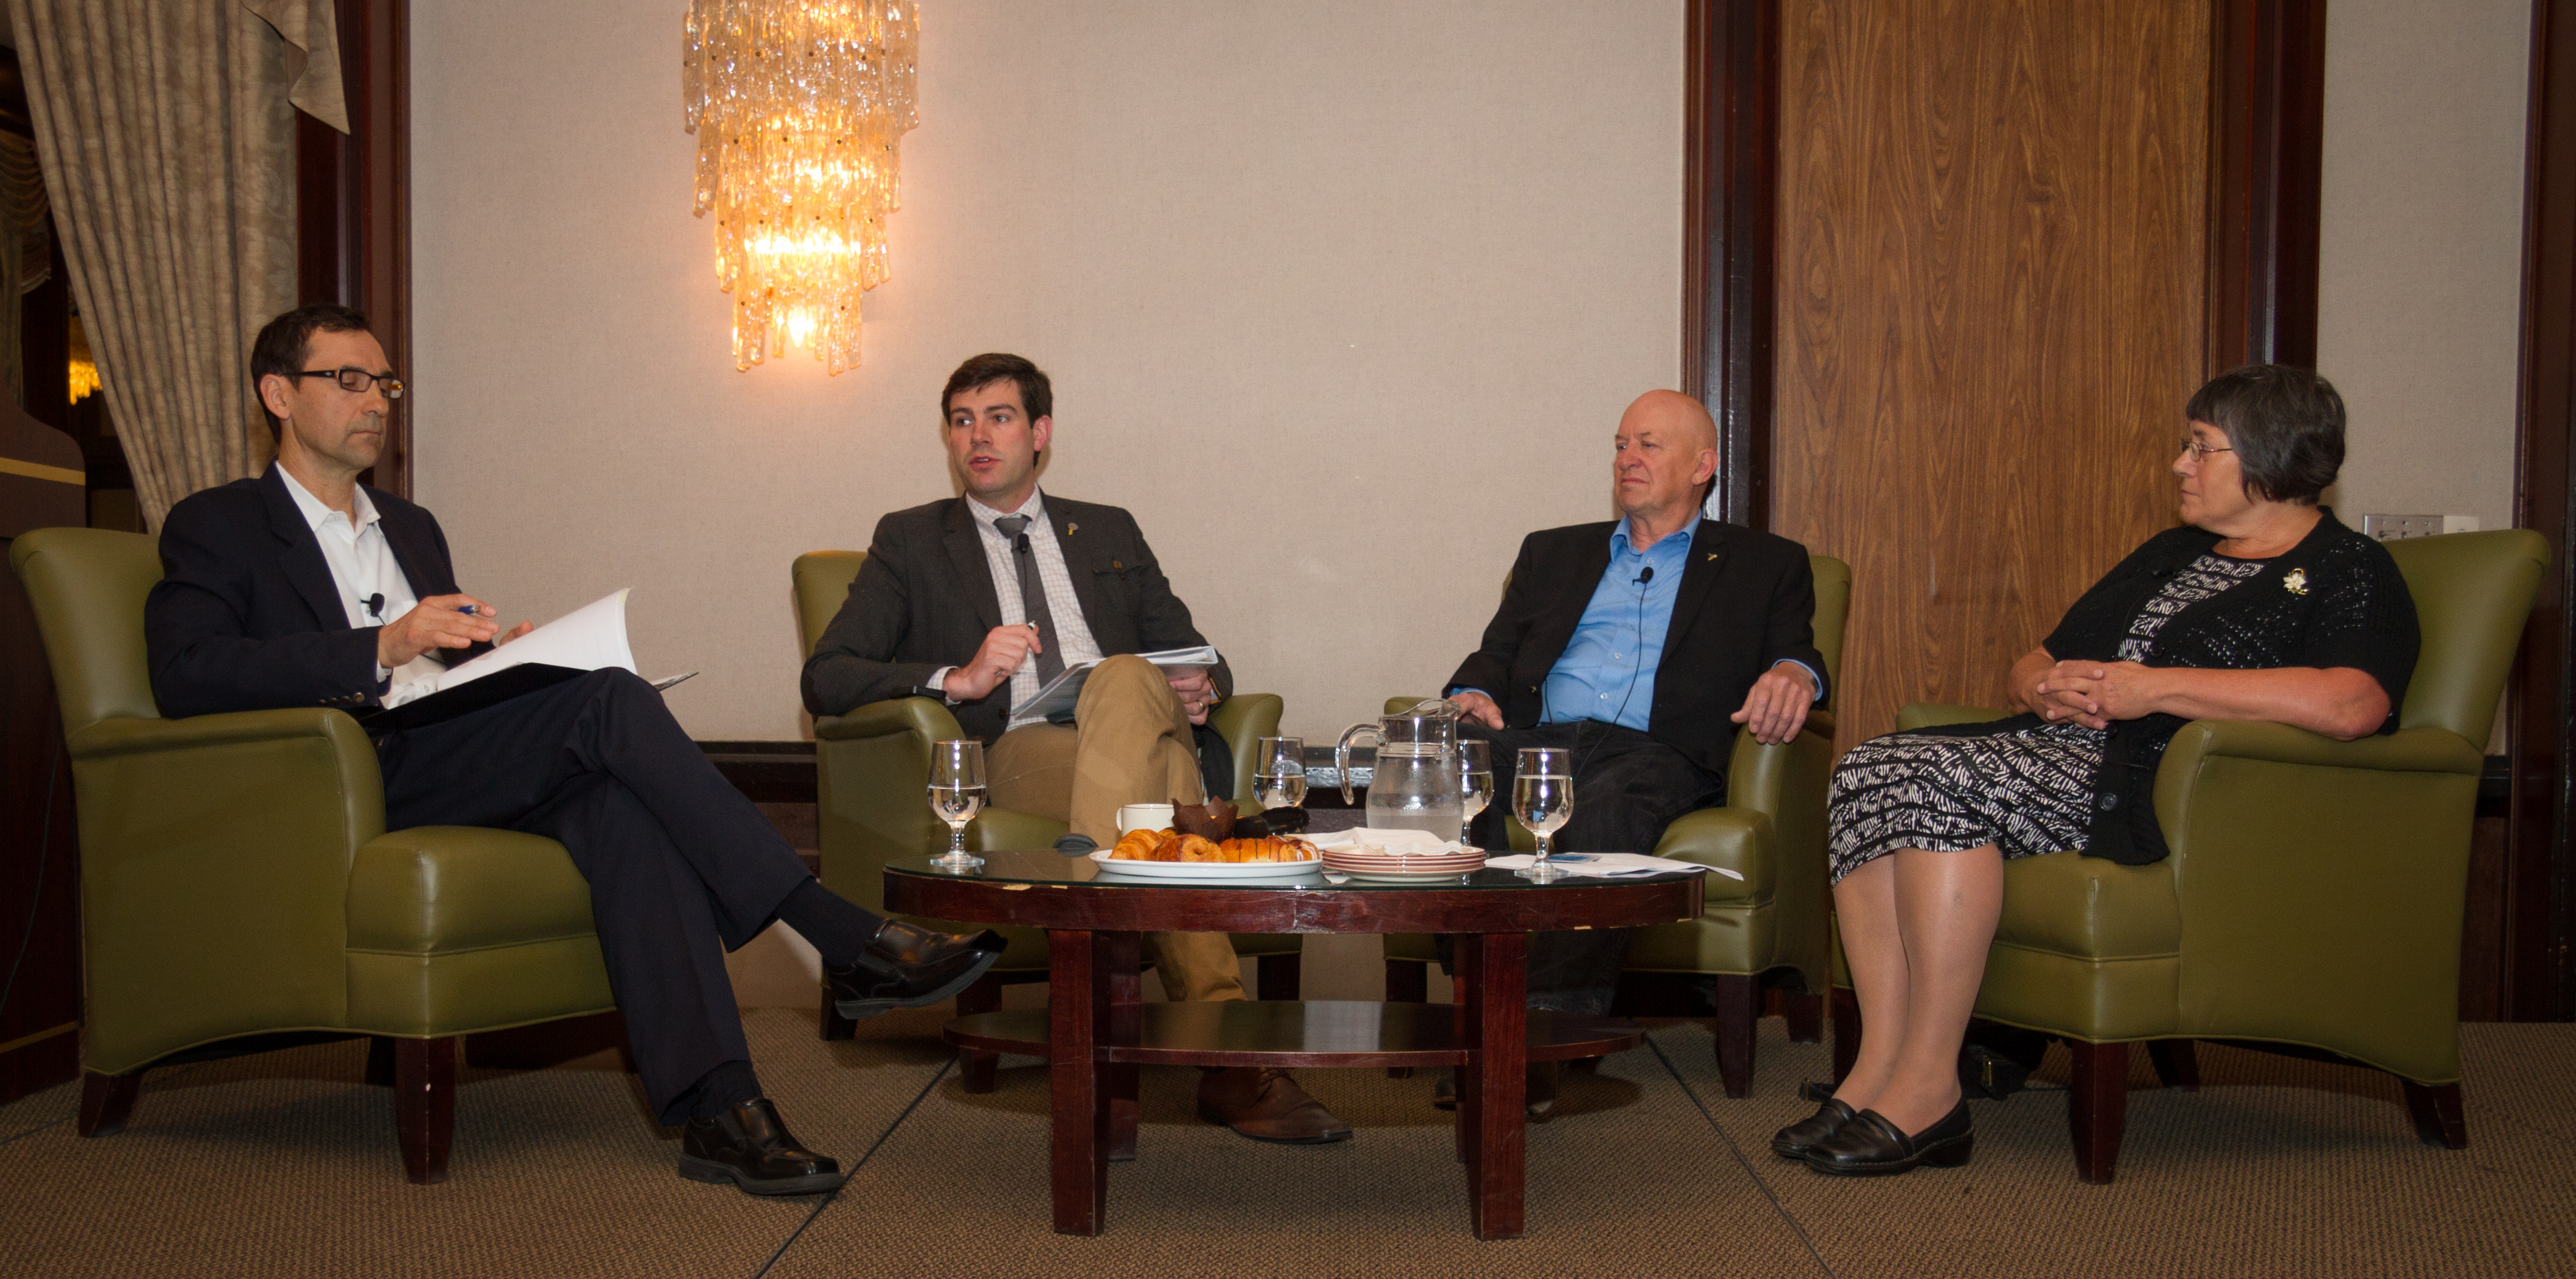 Garry Appelt, Don Iveson, Bruce Beattie and Judy Stewart